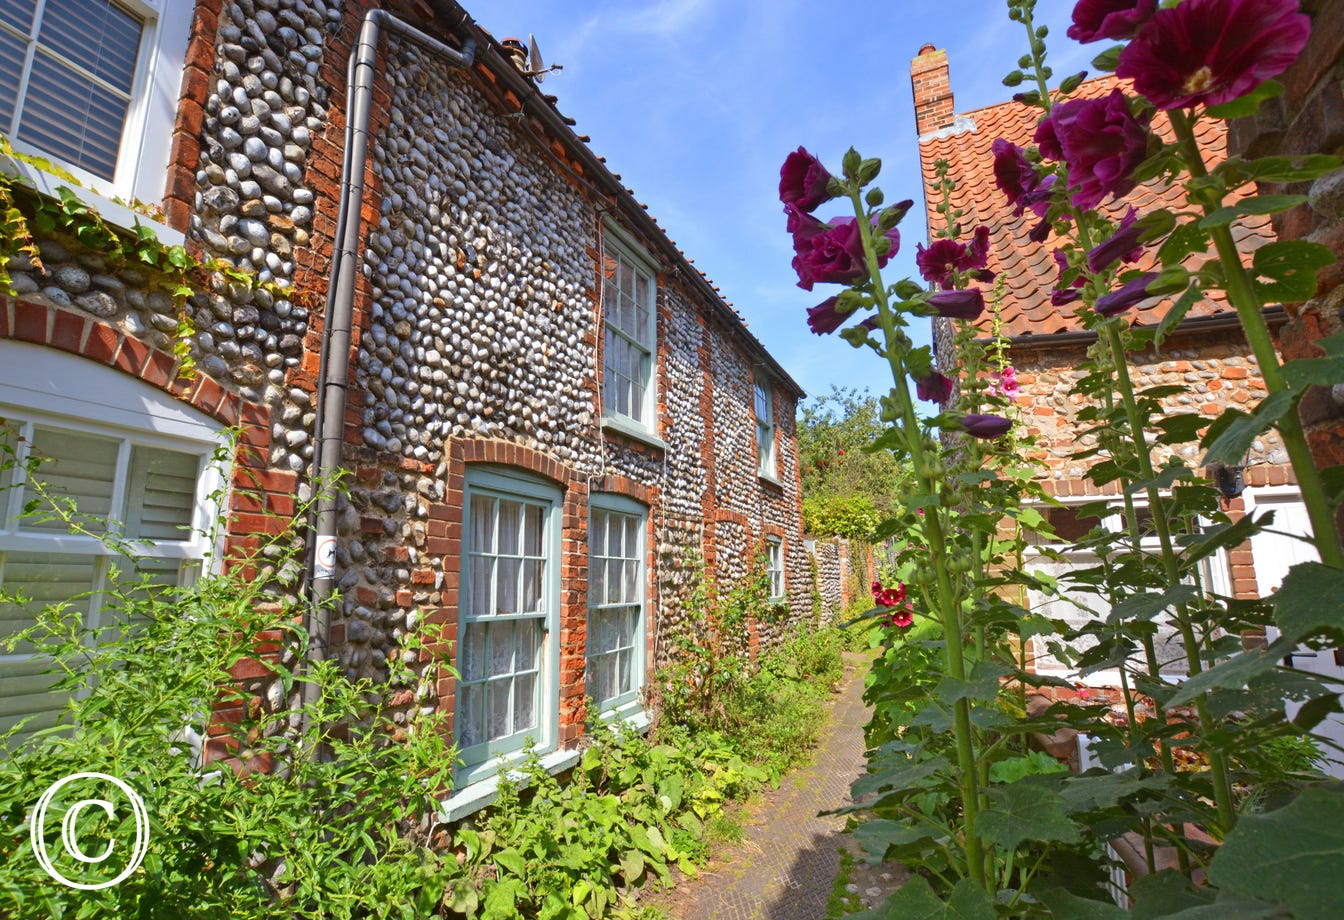 Hollyhock Cottage, built by traditional Norfolk brick and flint